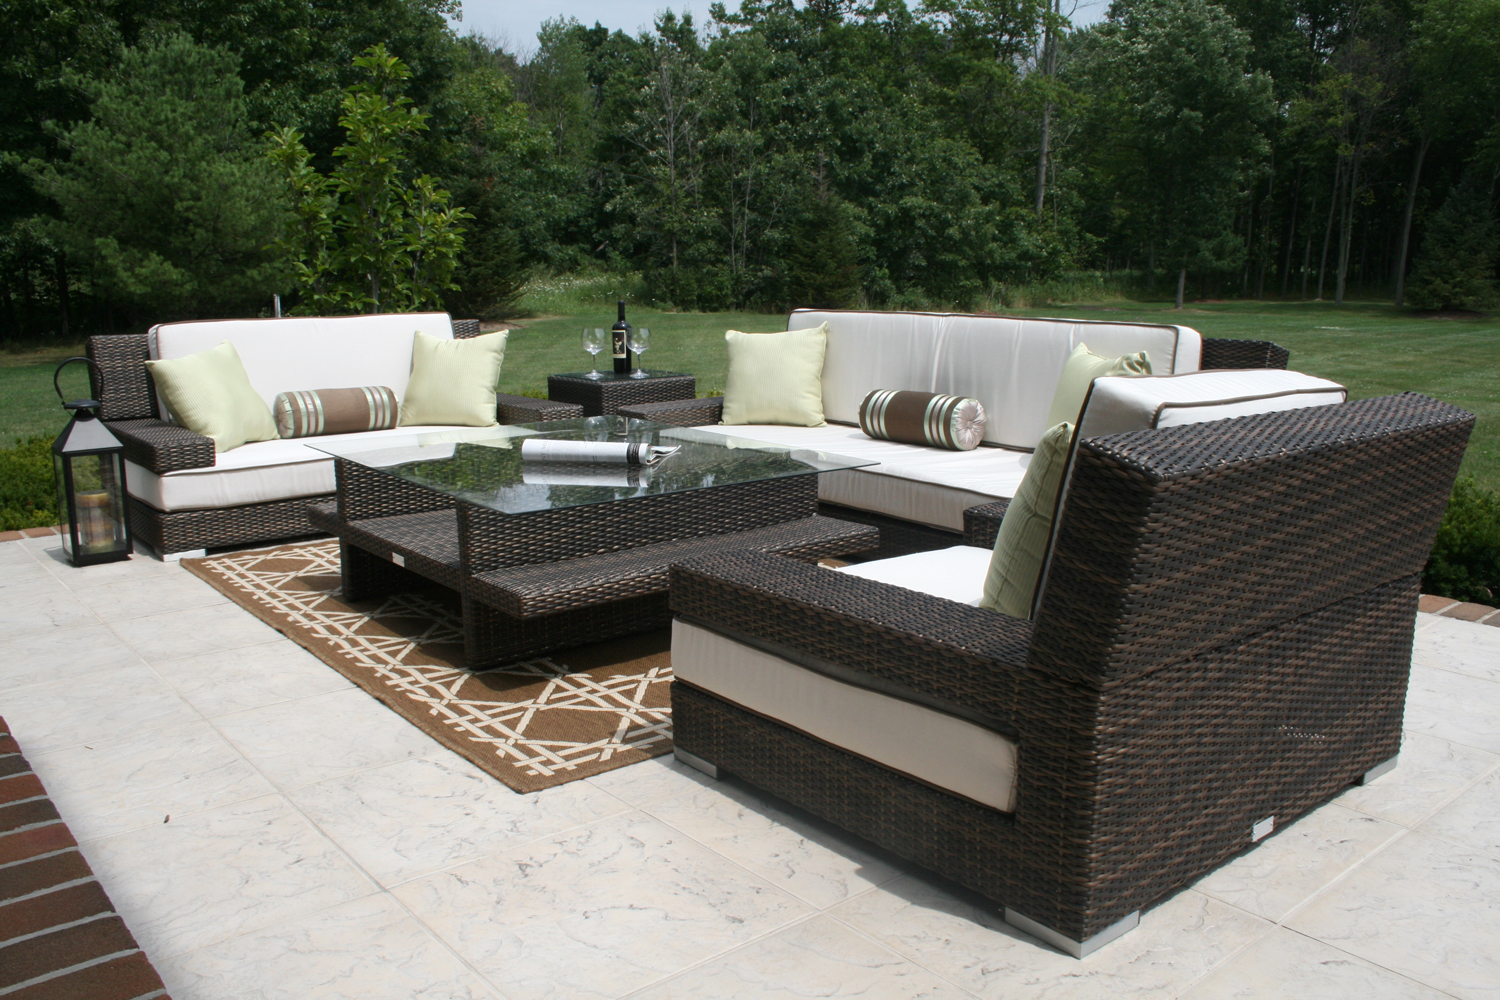 Openairlifestylesllc's Blog   Providing the world with high end